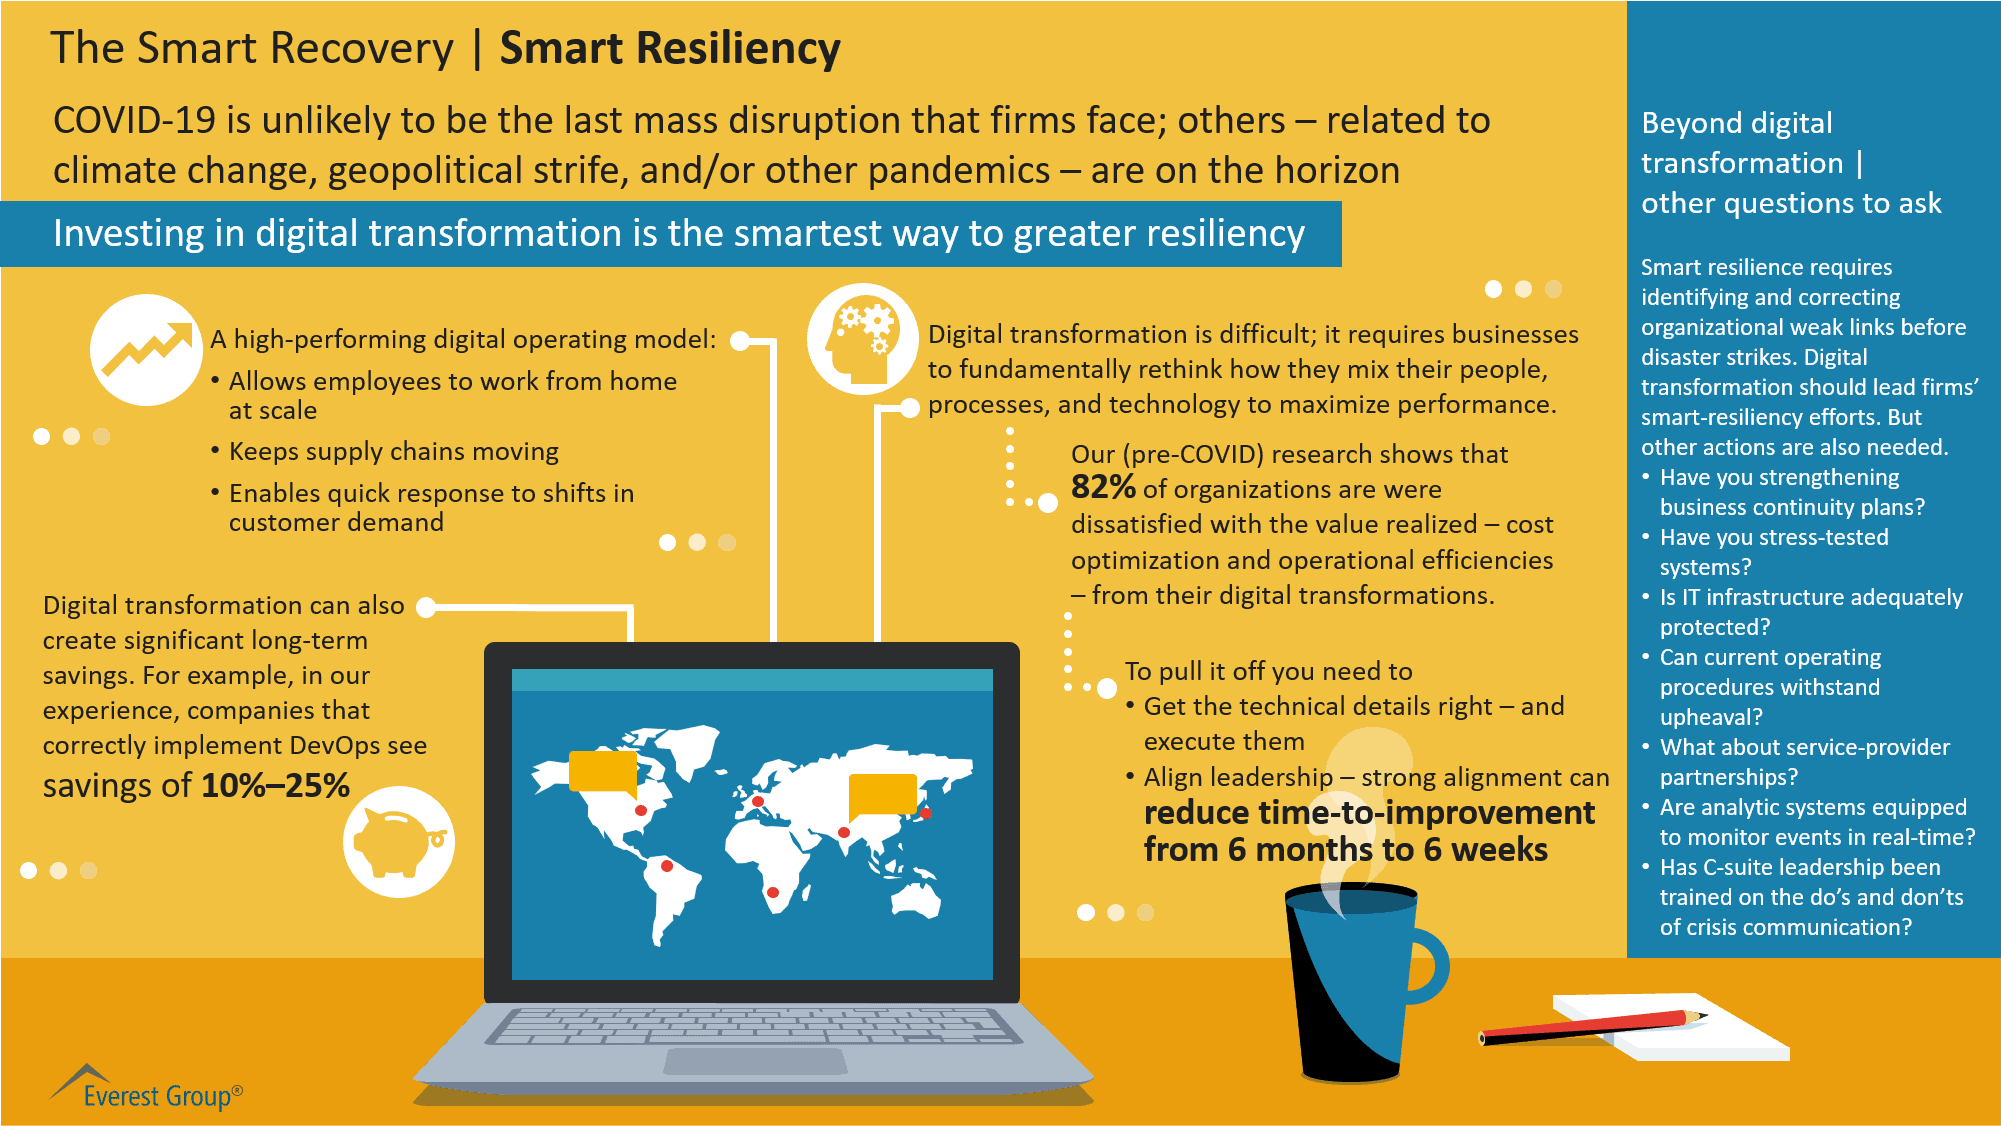 The Smart Recovery - Smart Resiliency